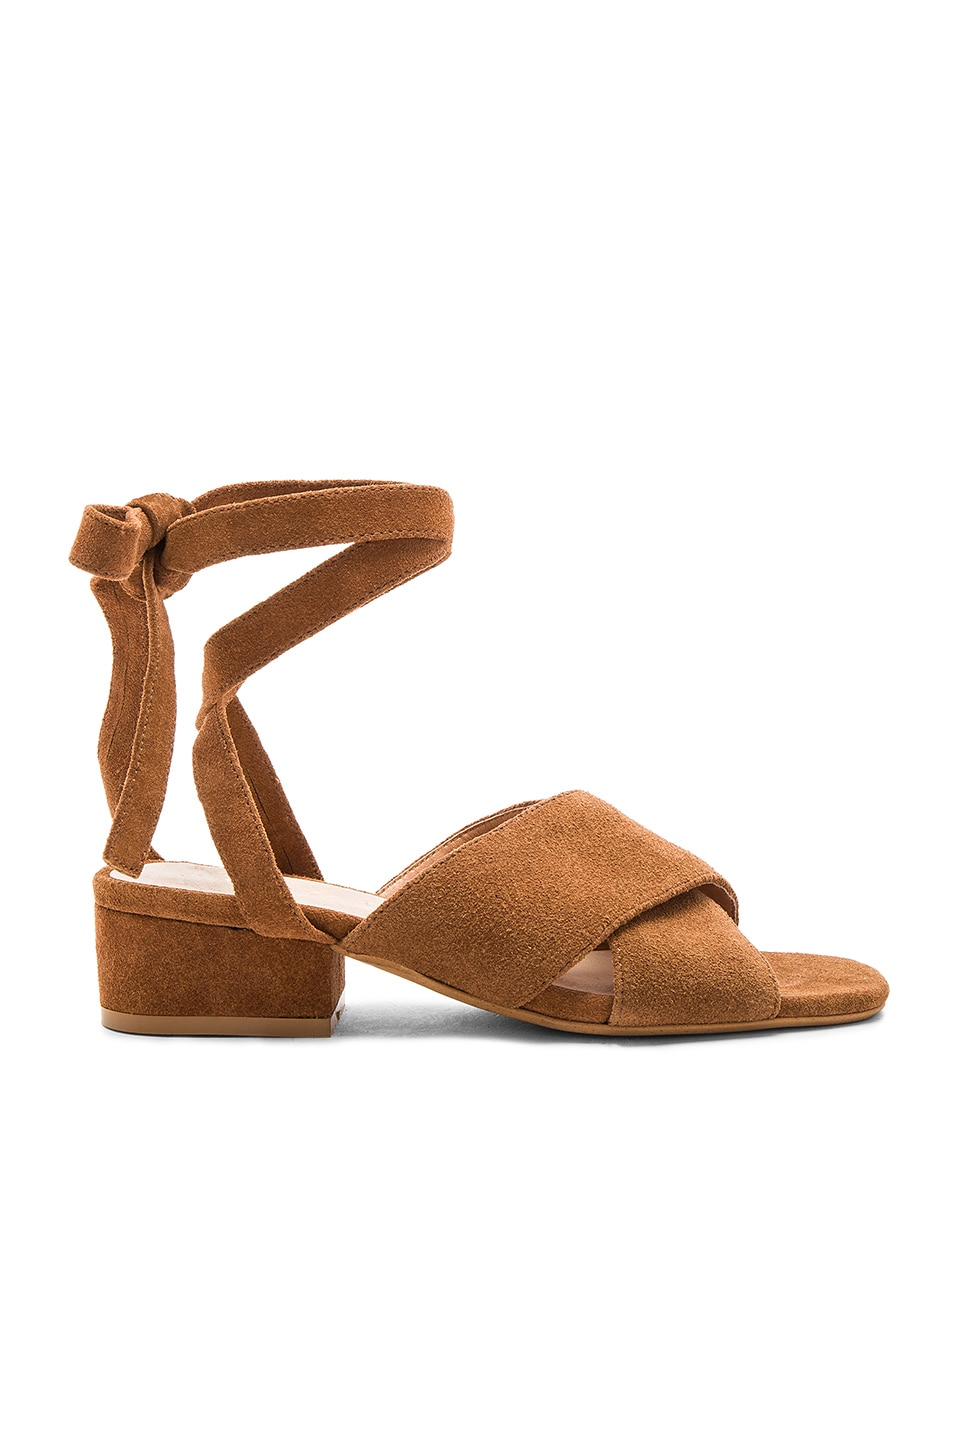 Frenzy Sandal by Matisse